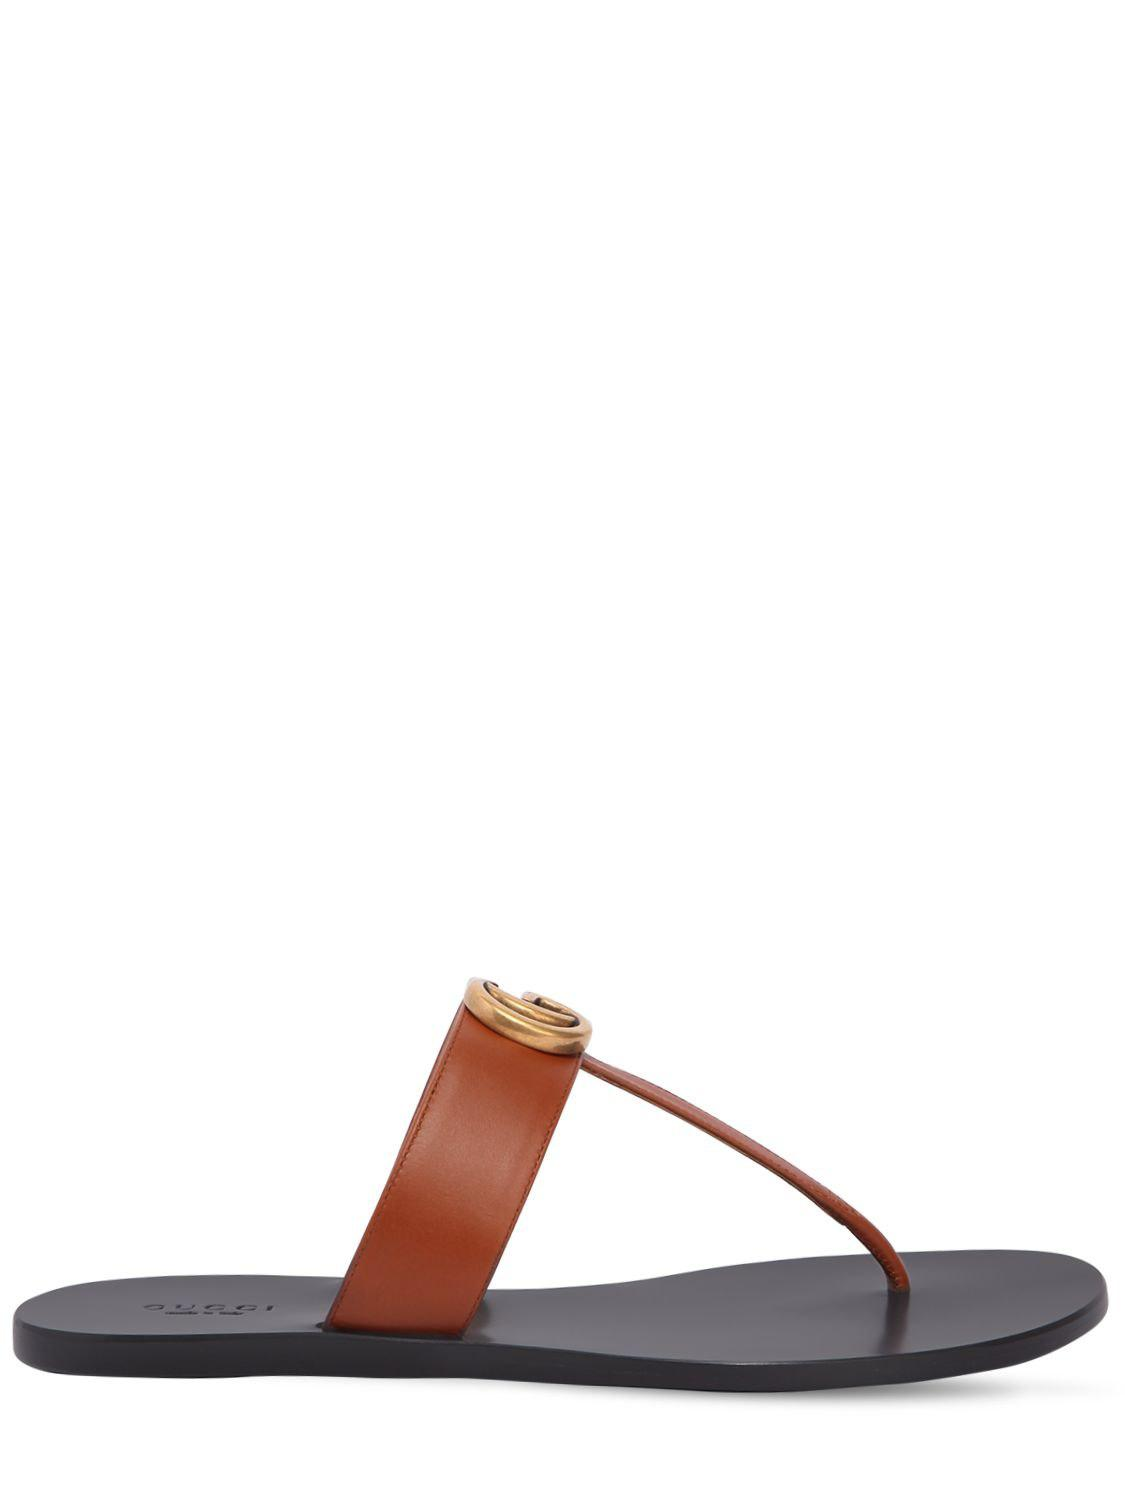 a44dabf5cc82 Gucci 10mm Marmont Leather Thong Sandals - Lyst